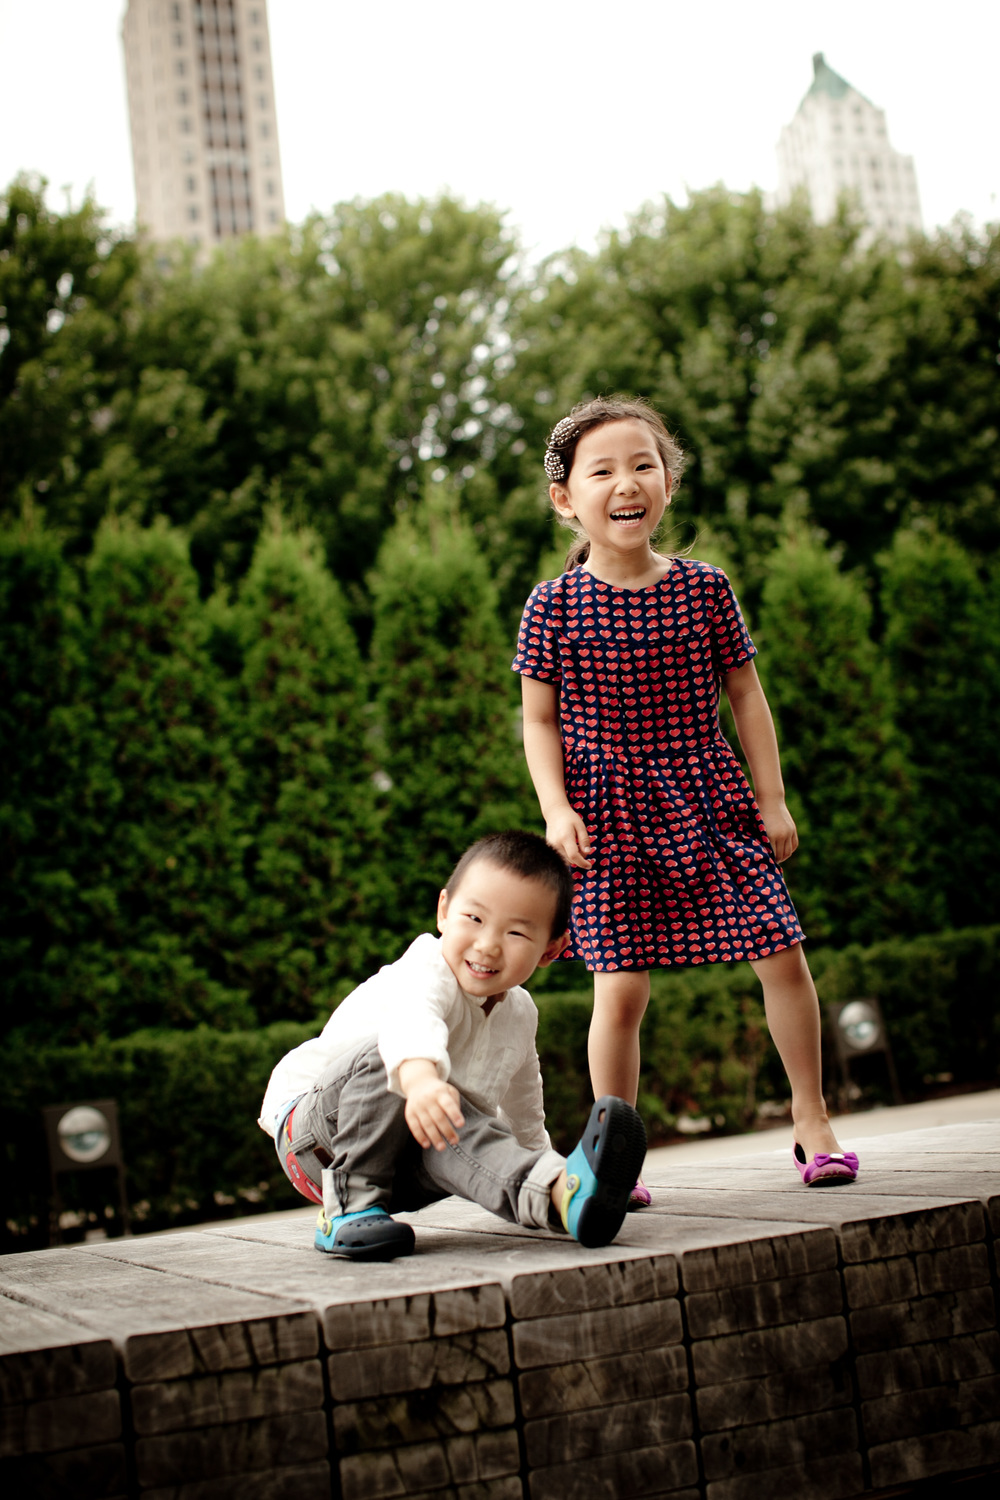 wendi & rudi lifestyle family photo session lurie gardens millenium park chicago blog-0009.jpg